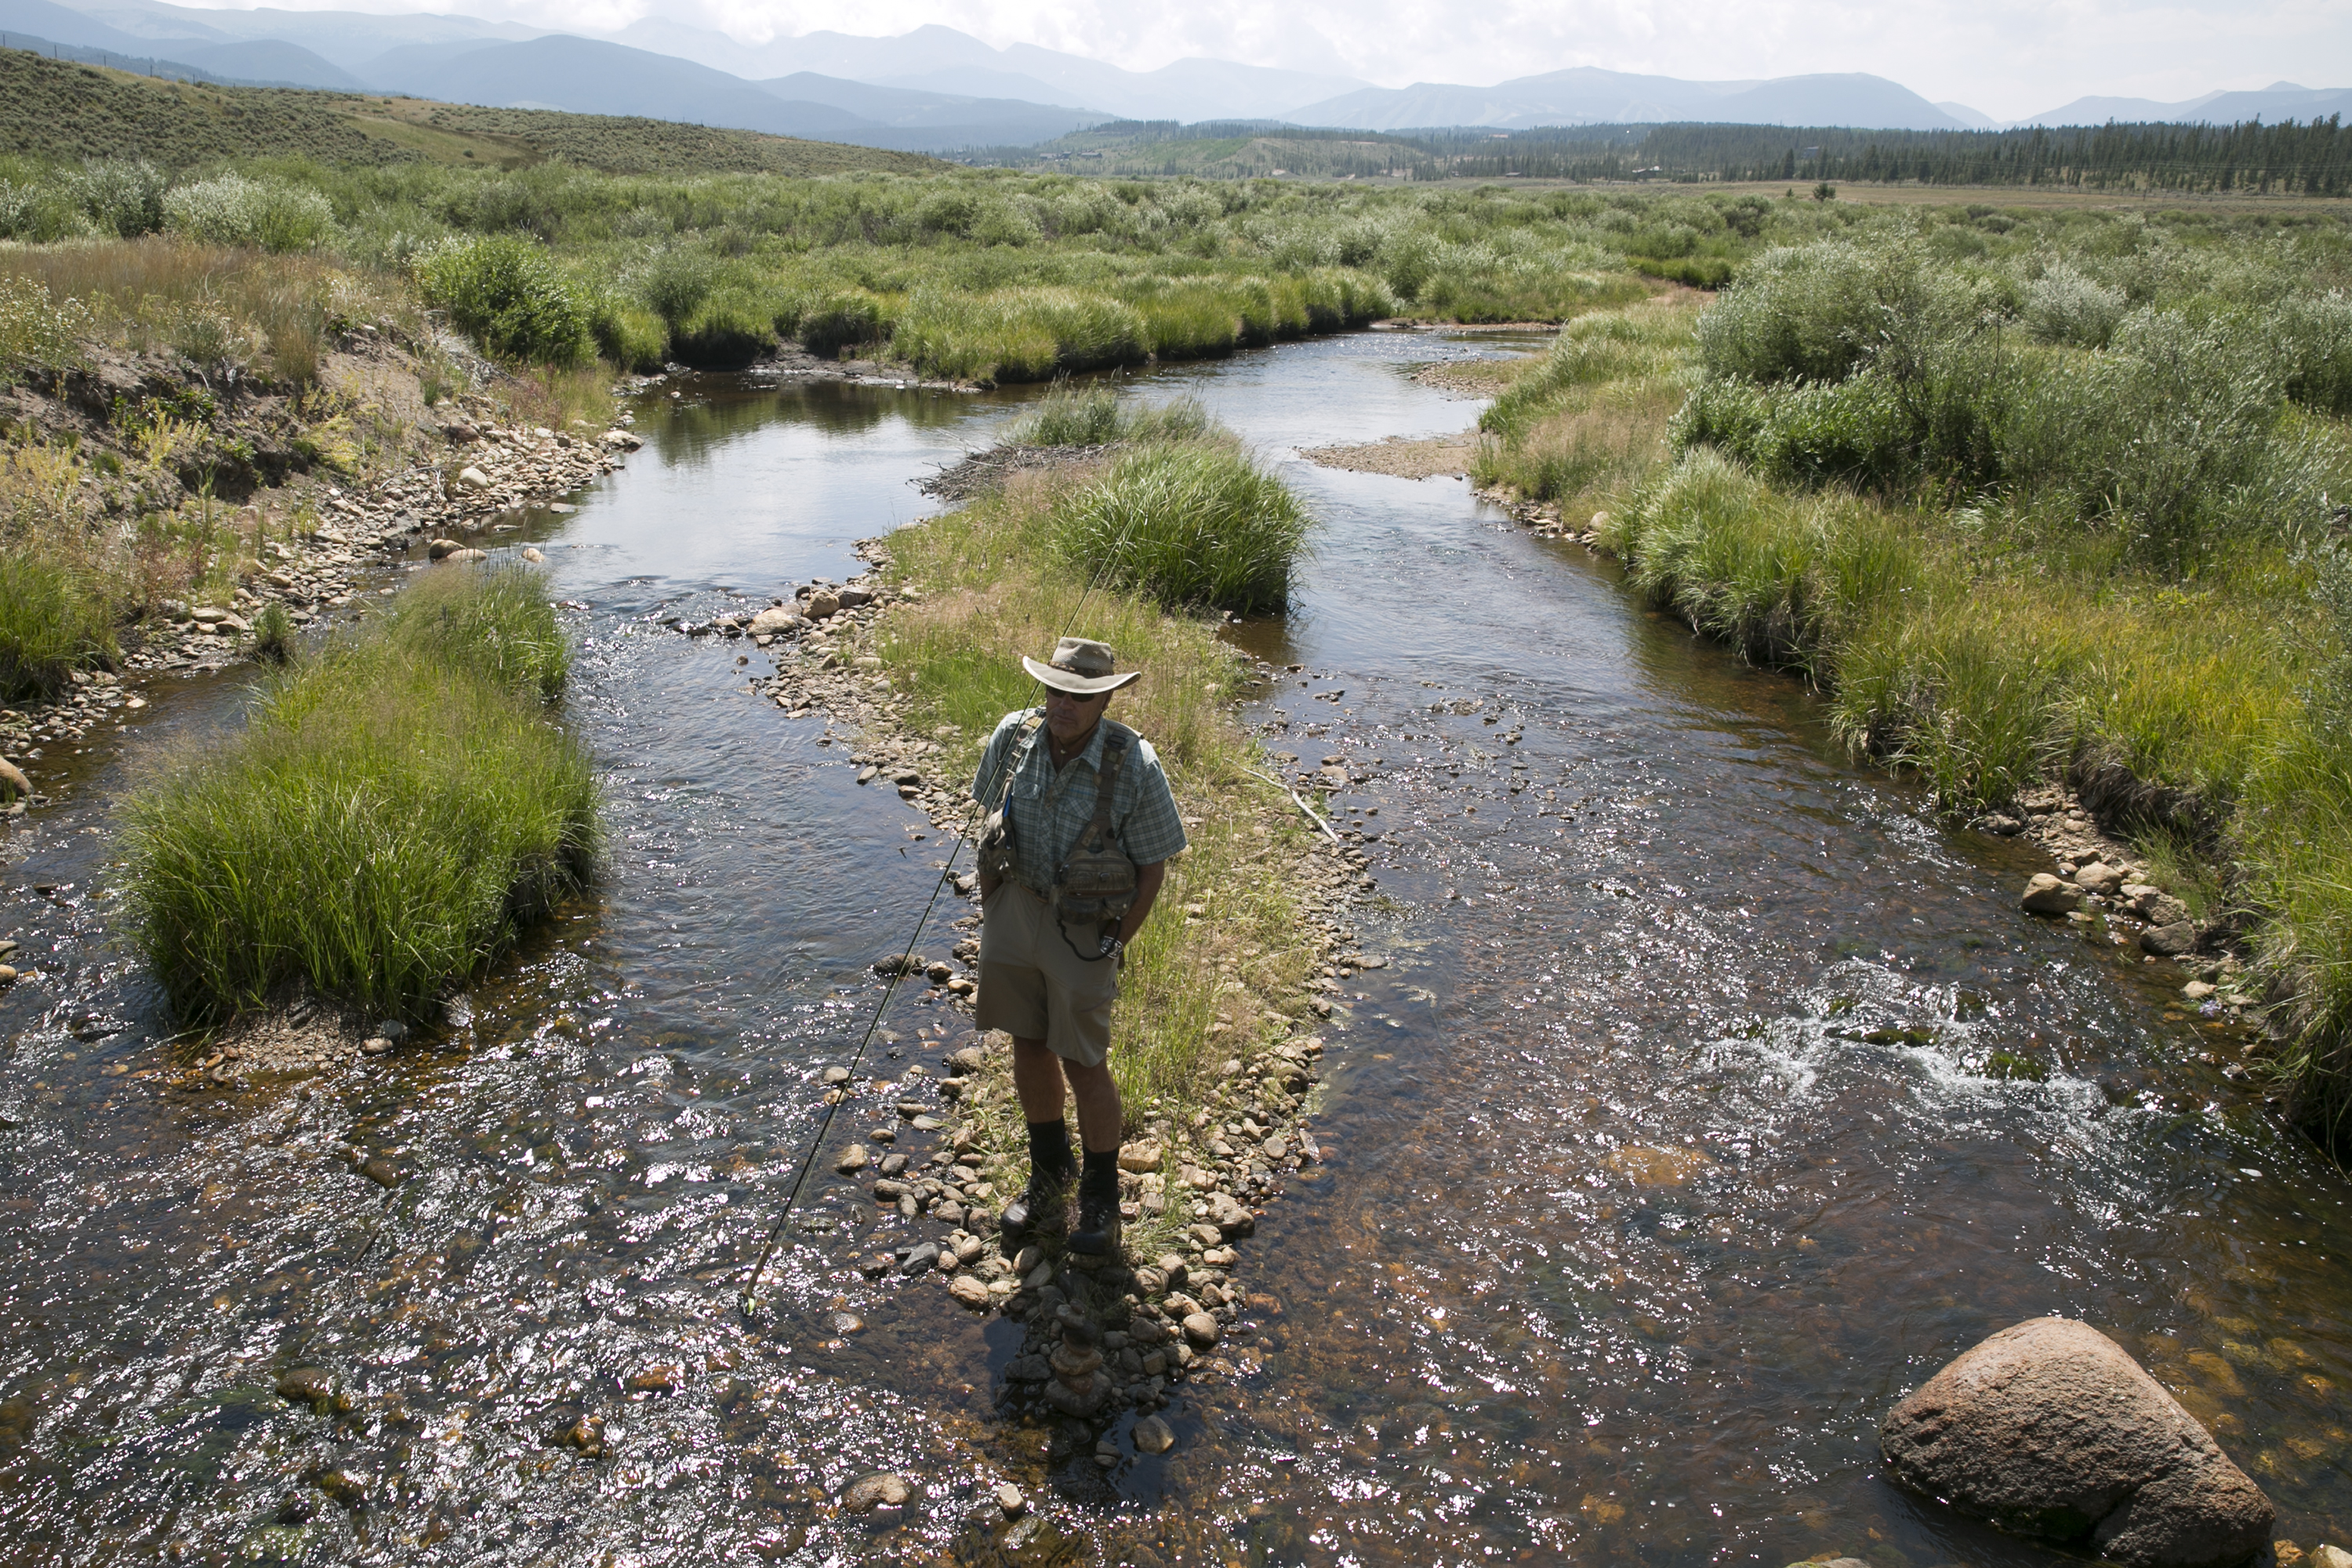 """KirkKlancke, president of the Colorado River Headwaters Chapter of Trout Unlimited, ona tributary of the Fraser River near his home on Grand Countyin early August 2018. """"It's really important for us to have a governor who prioritizes conservation, preservation of the environment that drives our tourist economy. That's key,"""" he says."""